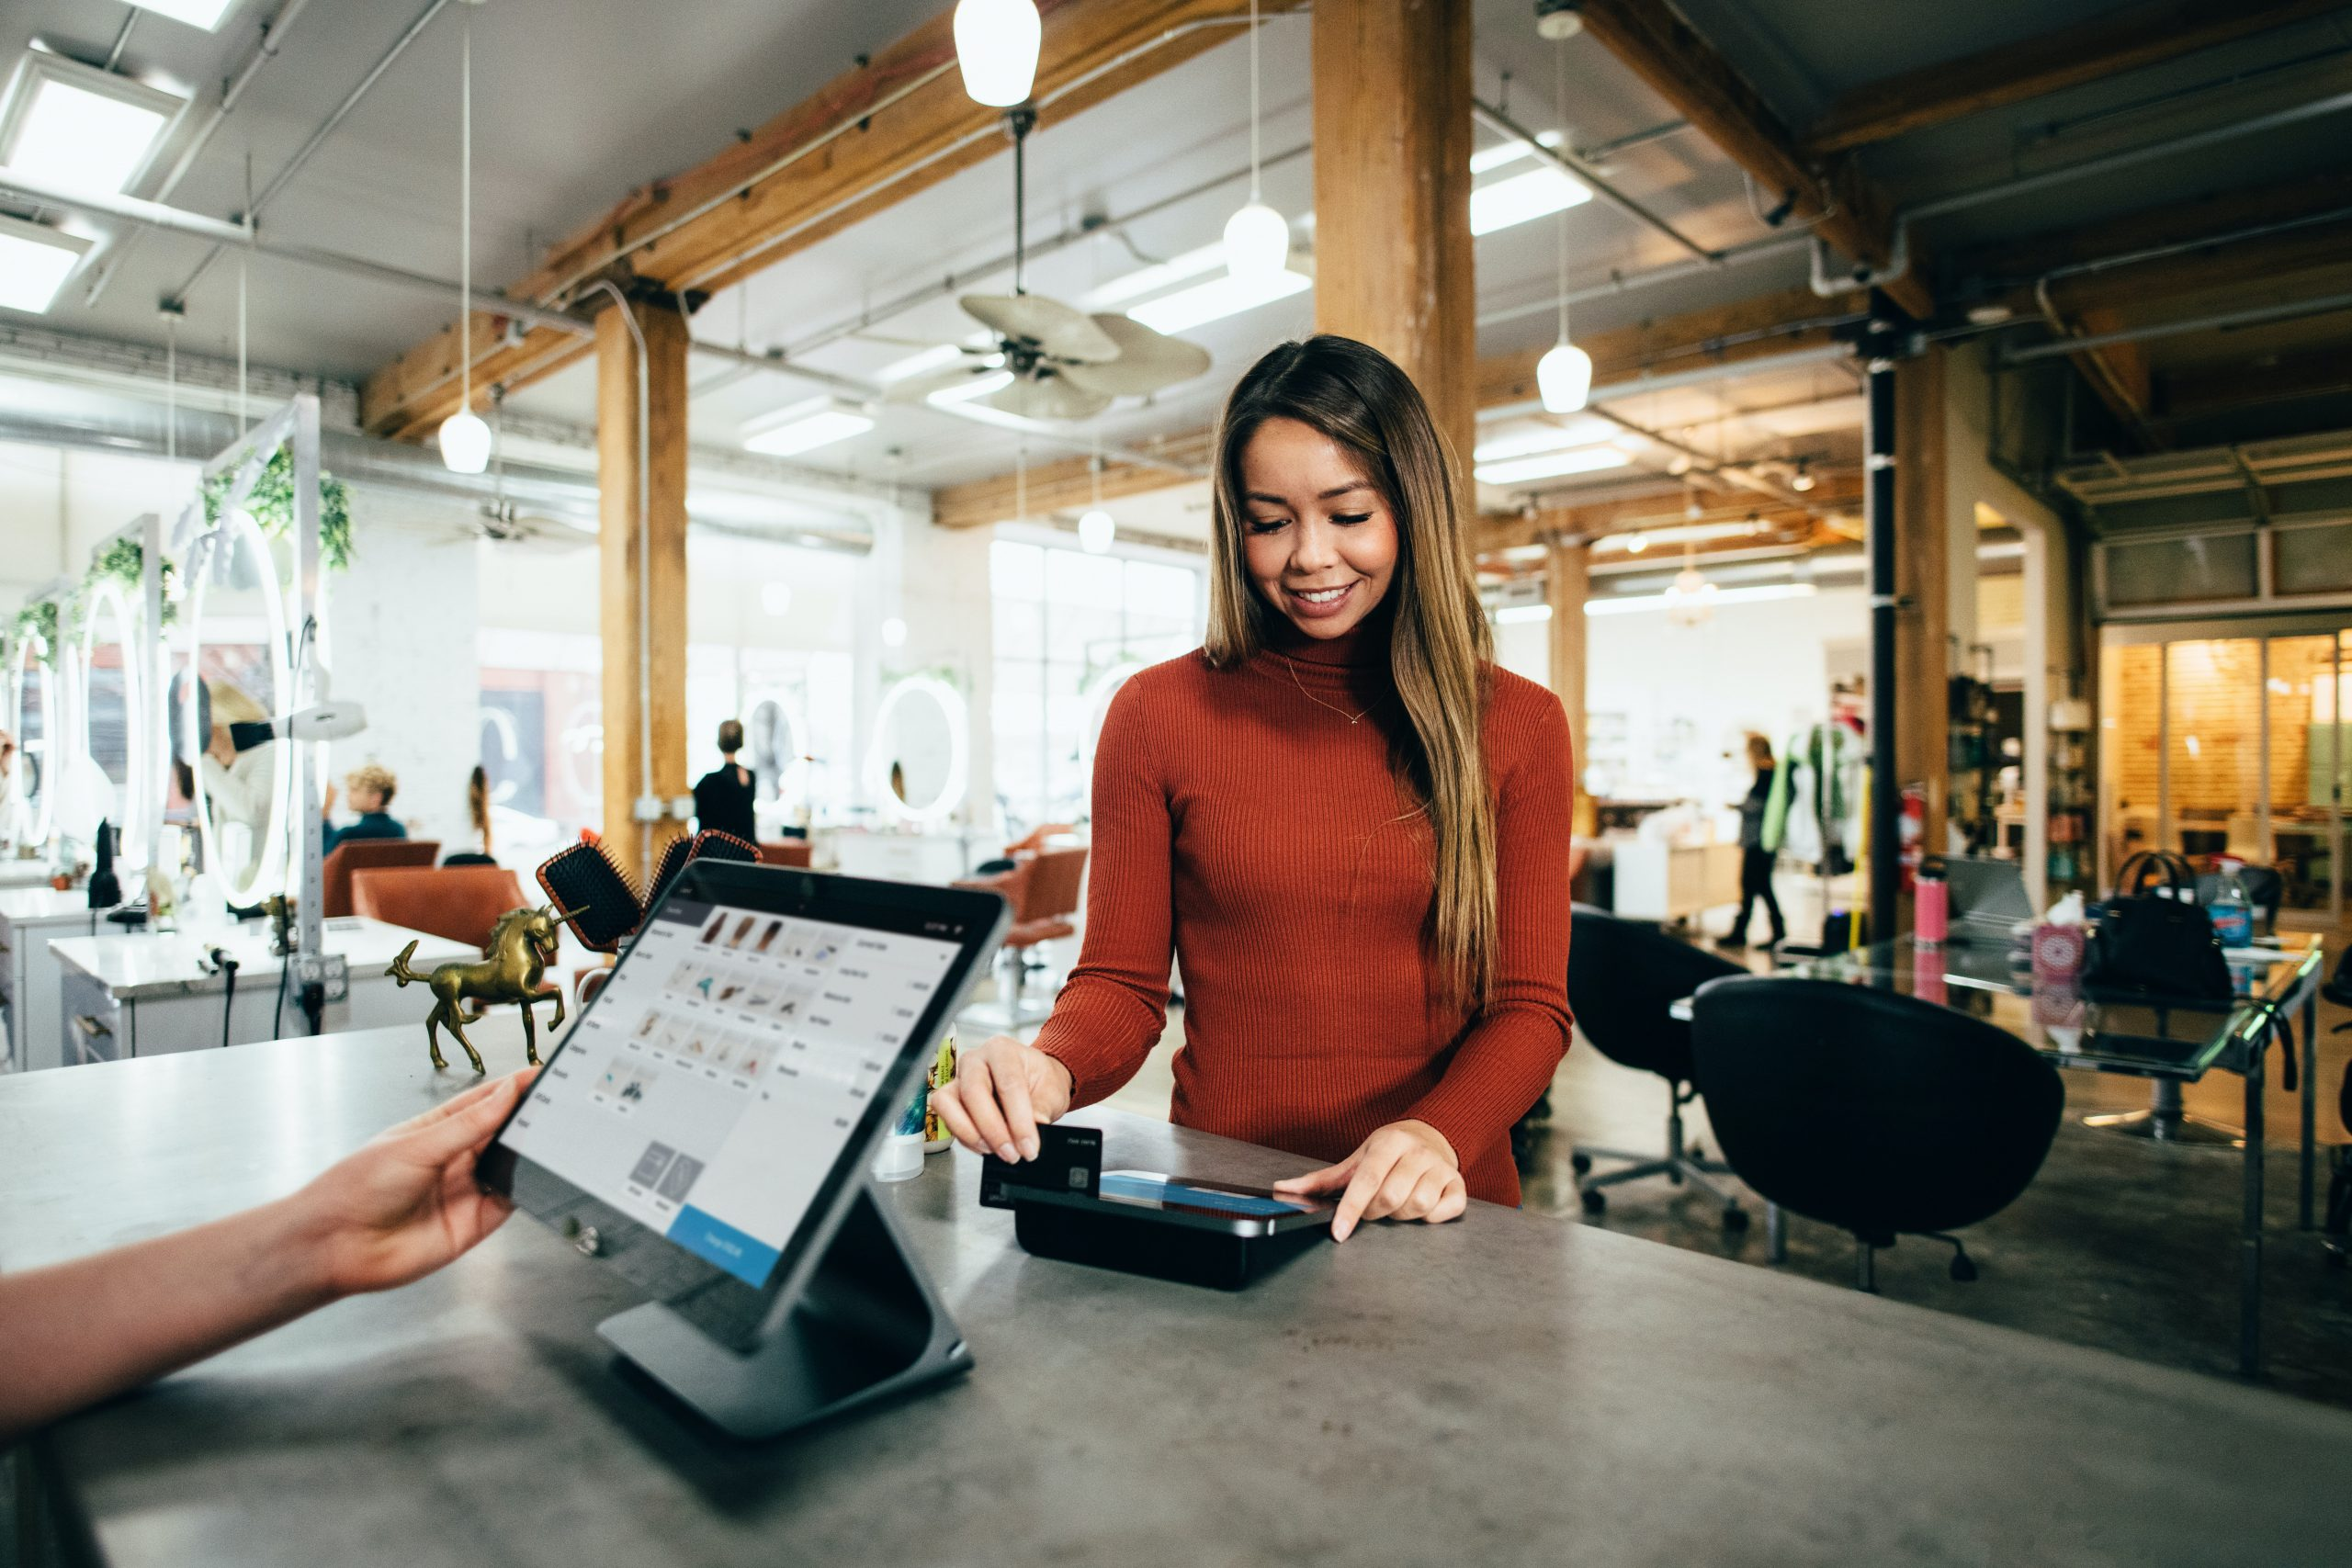 Woman in orange sweater using credit card at hip cafe